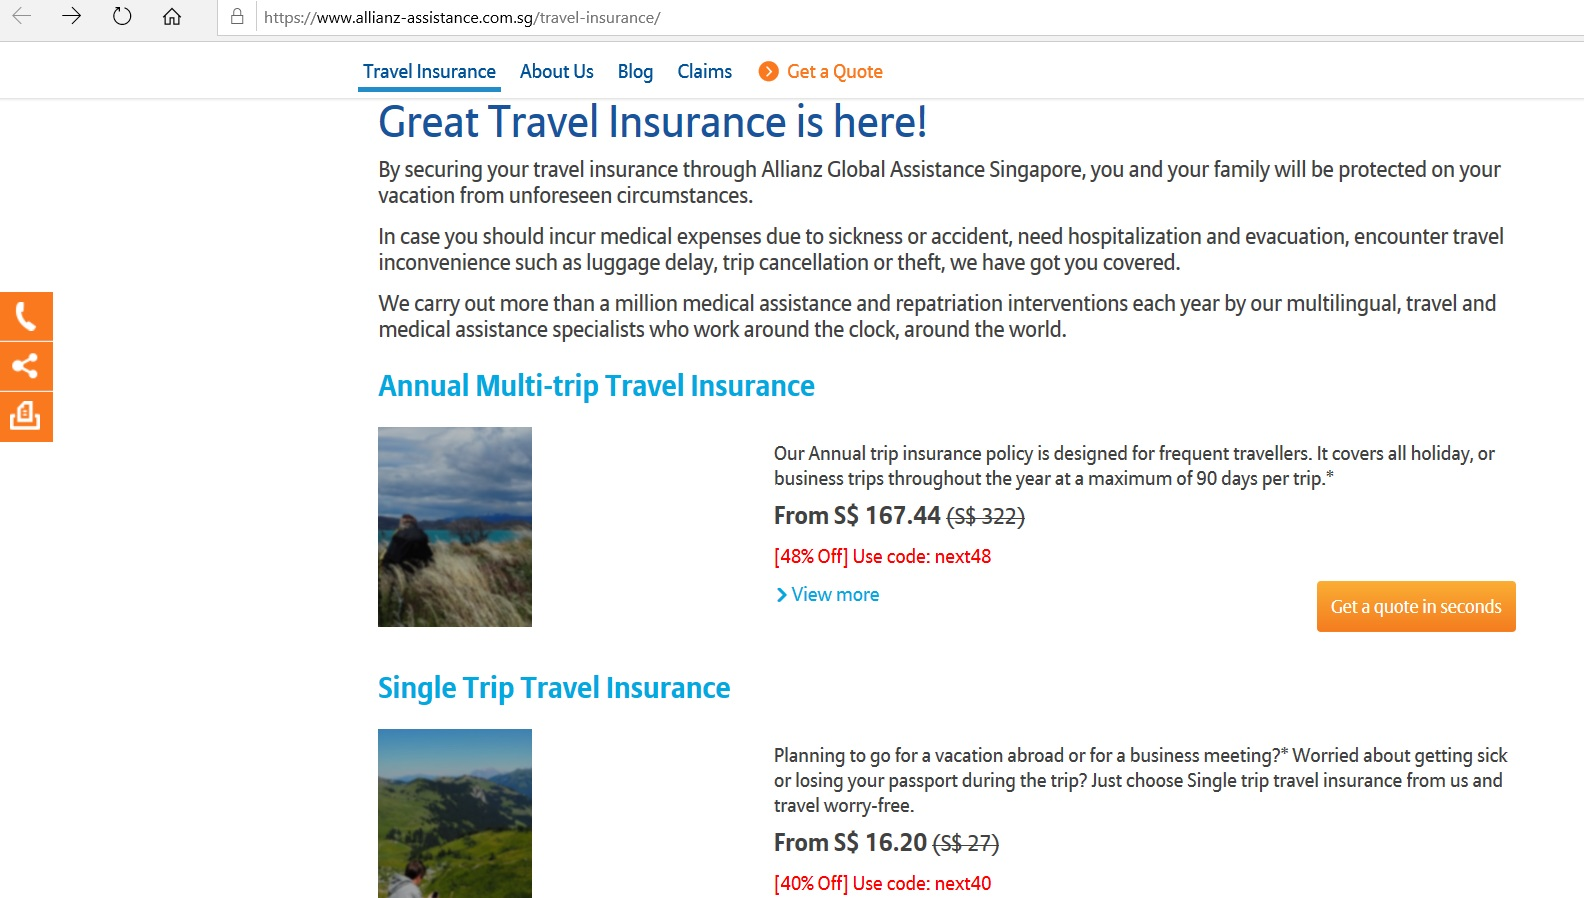 Listings for different Allianz travel insurance plans.